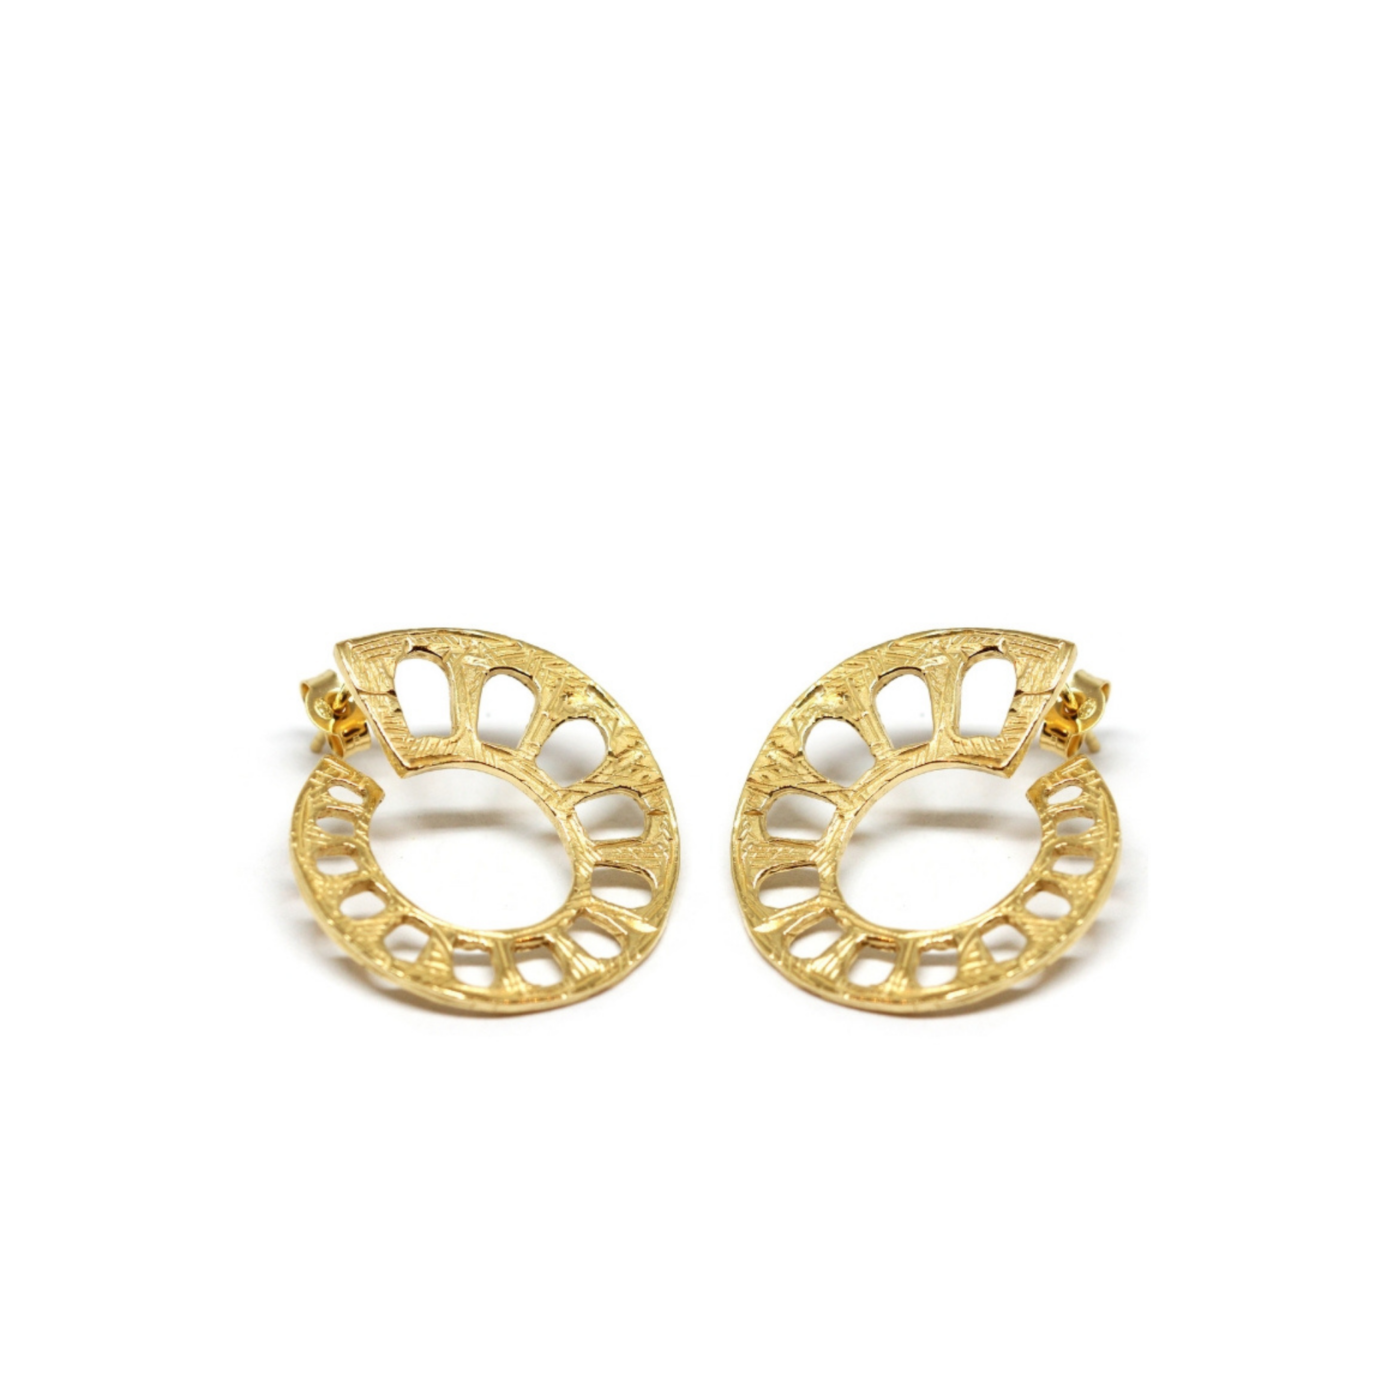 Aqueduct Earrings Gold Plated Silver